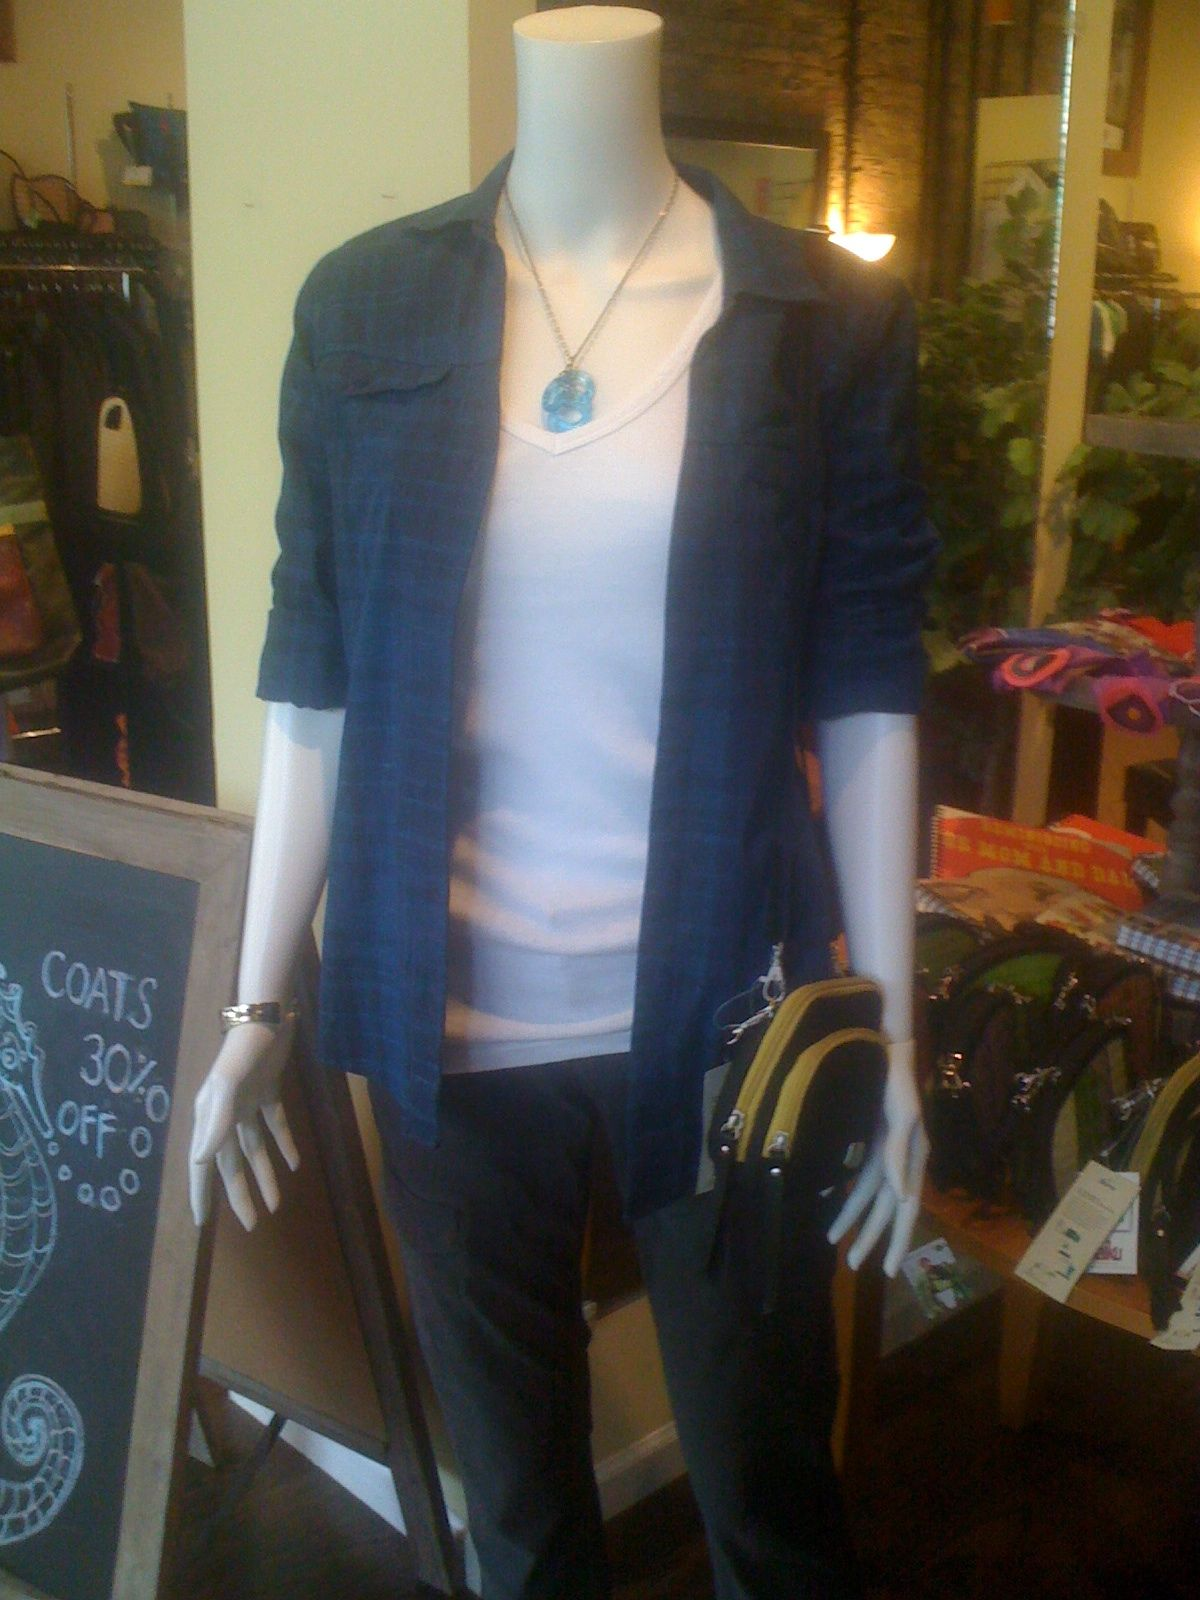 Celeste put this amazing look together. It's casual chic at it's best complete with a necklace from Smart Glass, made from recycled sake bottles.